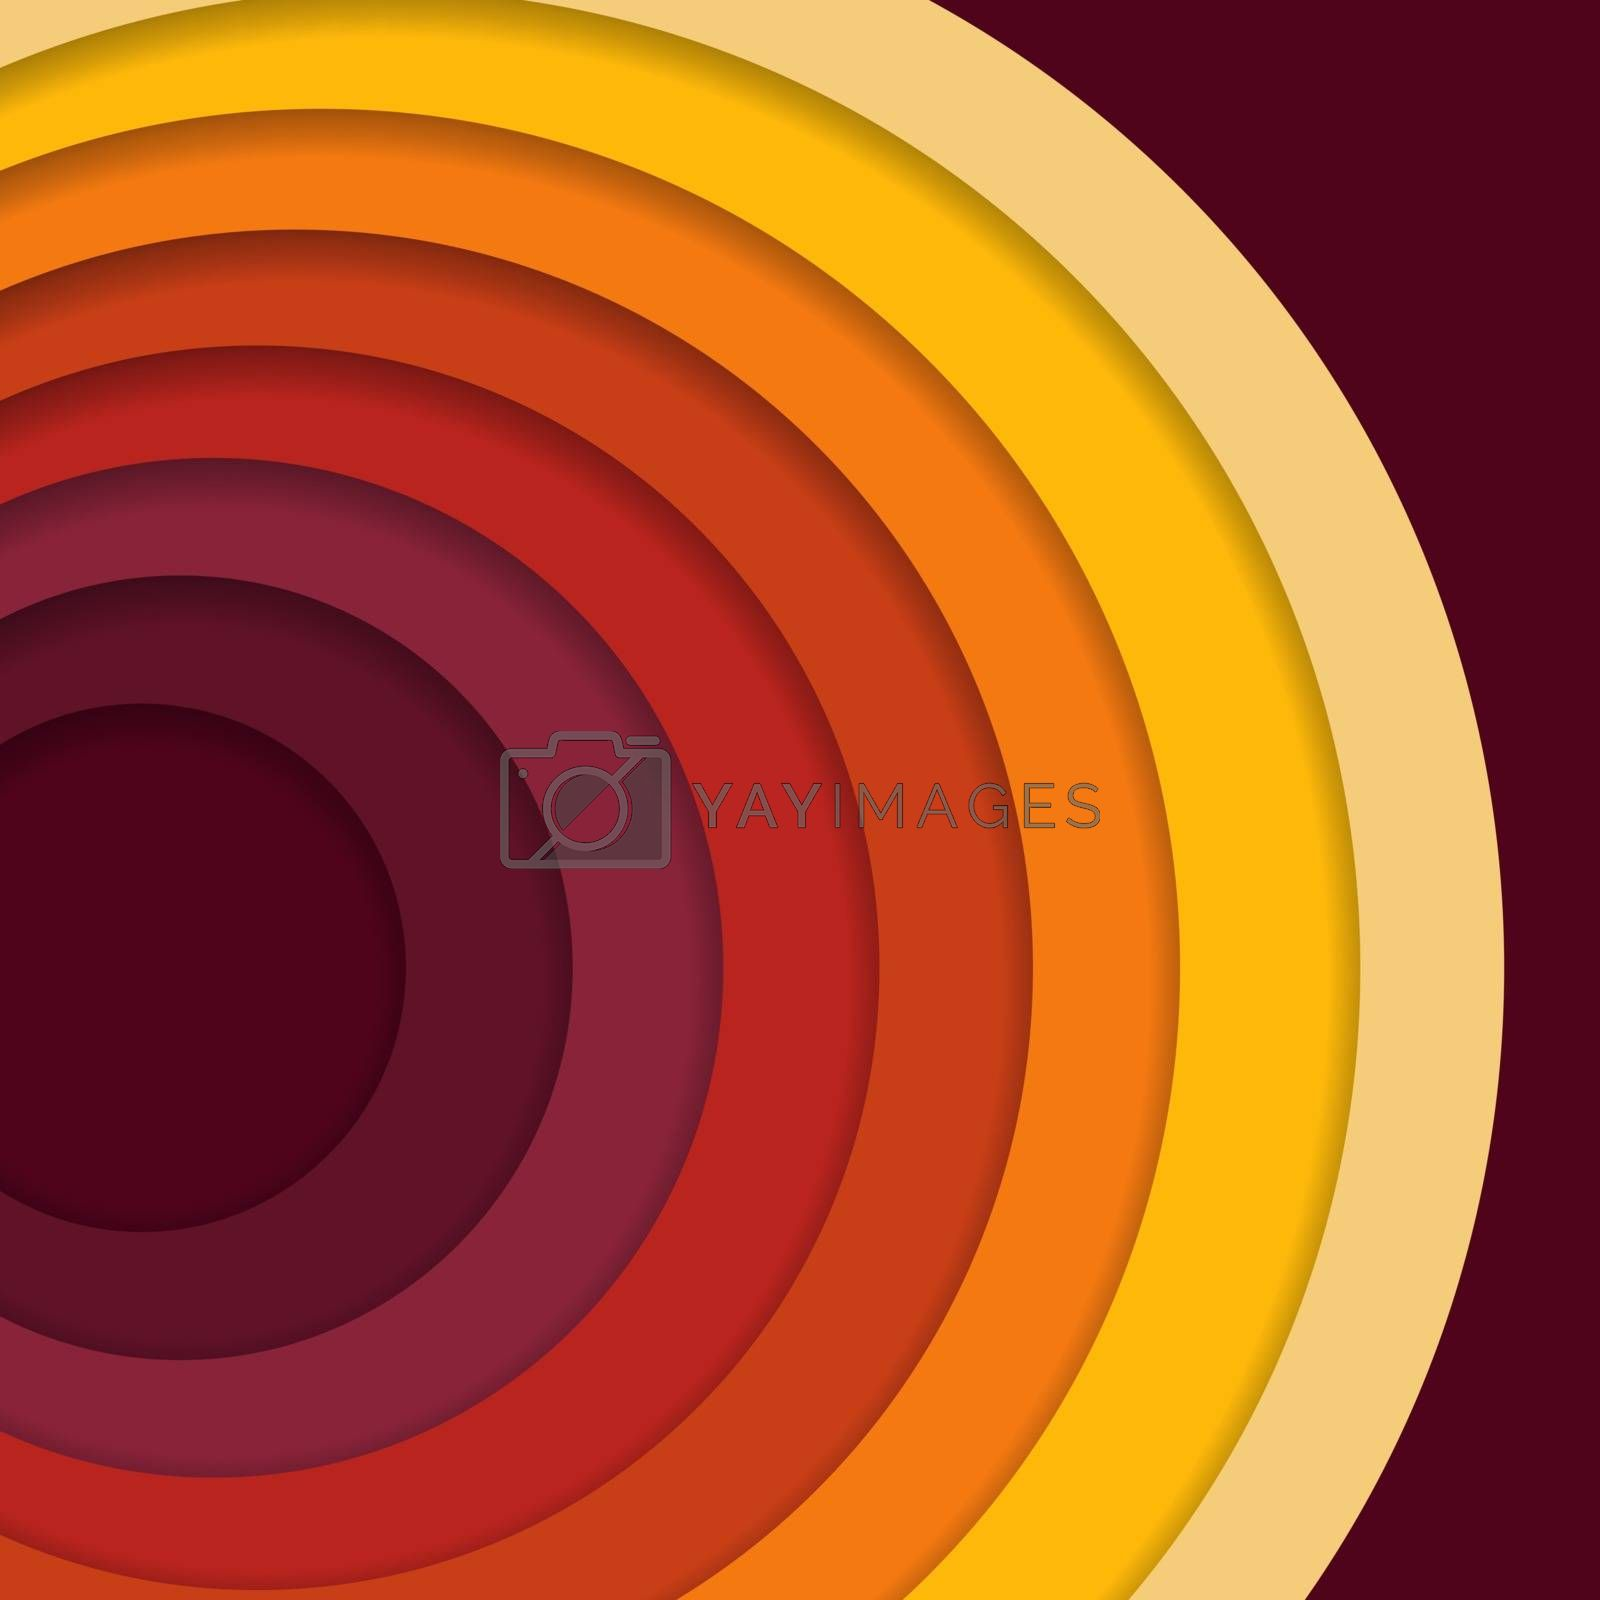 Abstract 3D paper cut background. Abstract wave shapes. Vector format